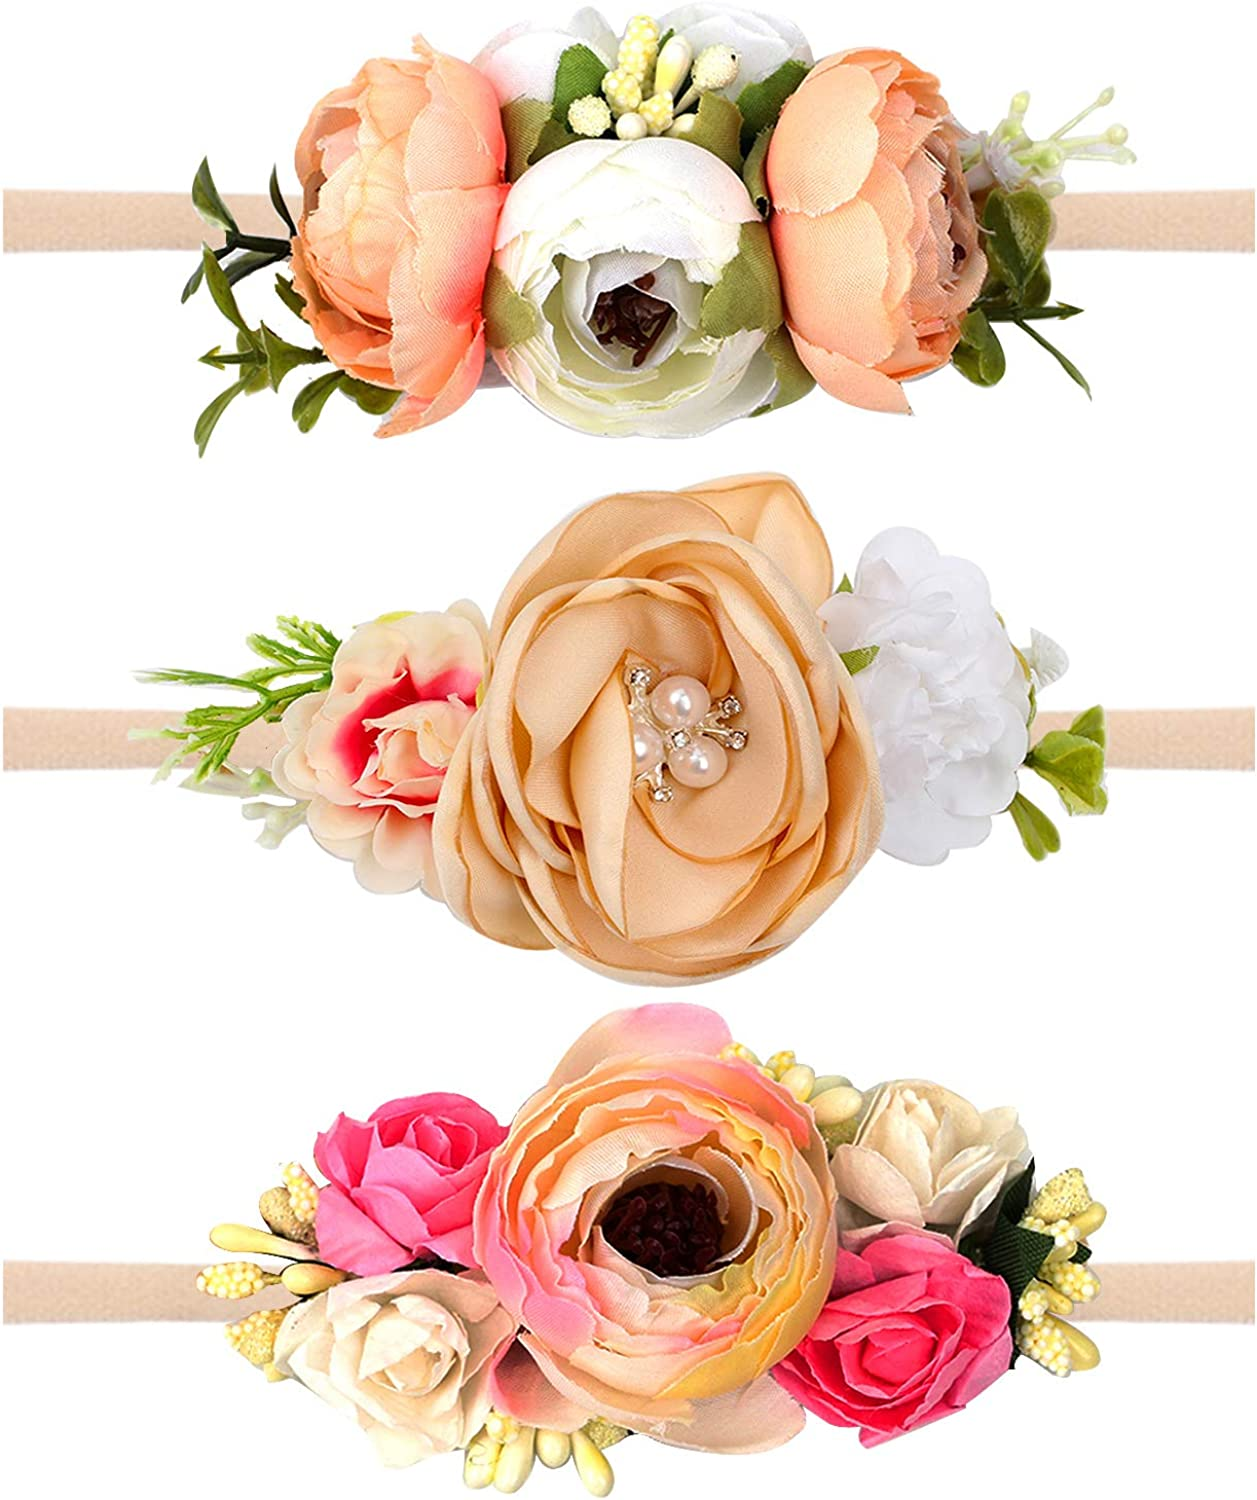 10PCS Baby Girl Bow Floral Flower Elastic Headband Hair Band Accessories Gifts